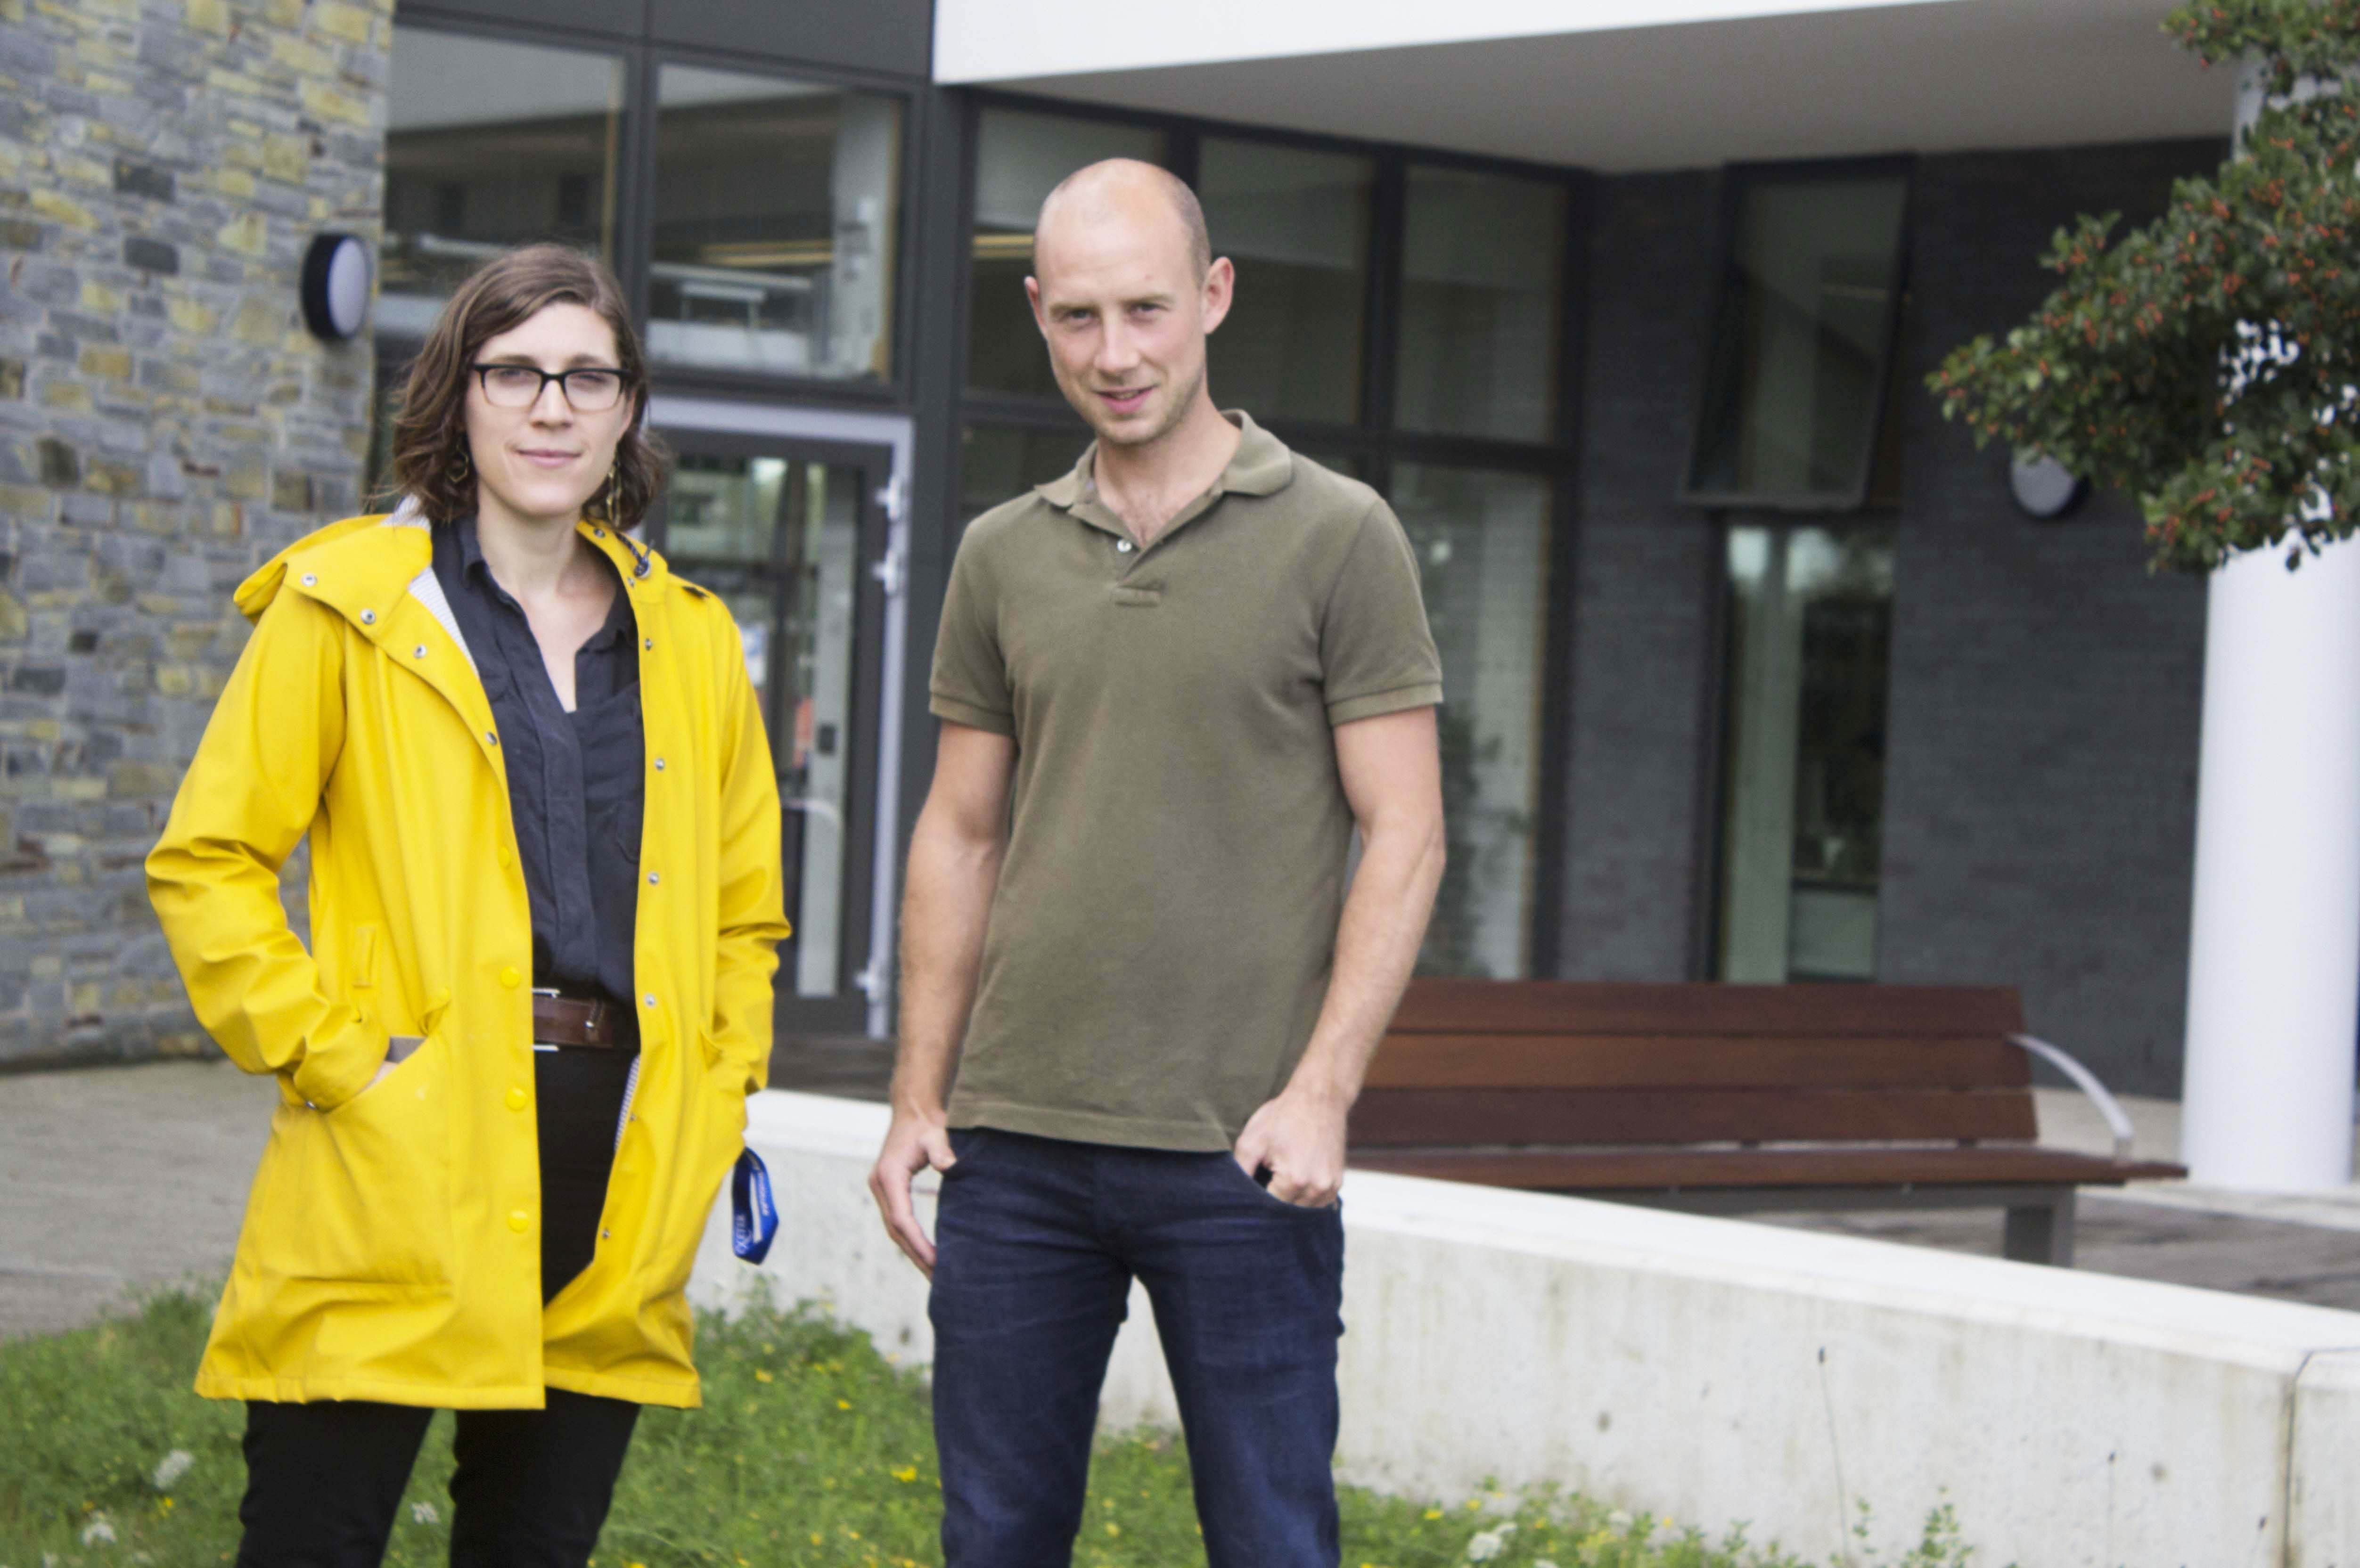 During her 10-day residency Marissa worked closely with Dr Gabriel Yvon-Durocher, Senior Lecturer in Natural Environment, who has been carrying out studies on the response of soil carbon sequestration to climate change and land use management.